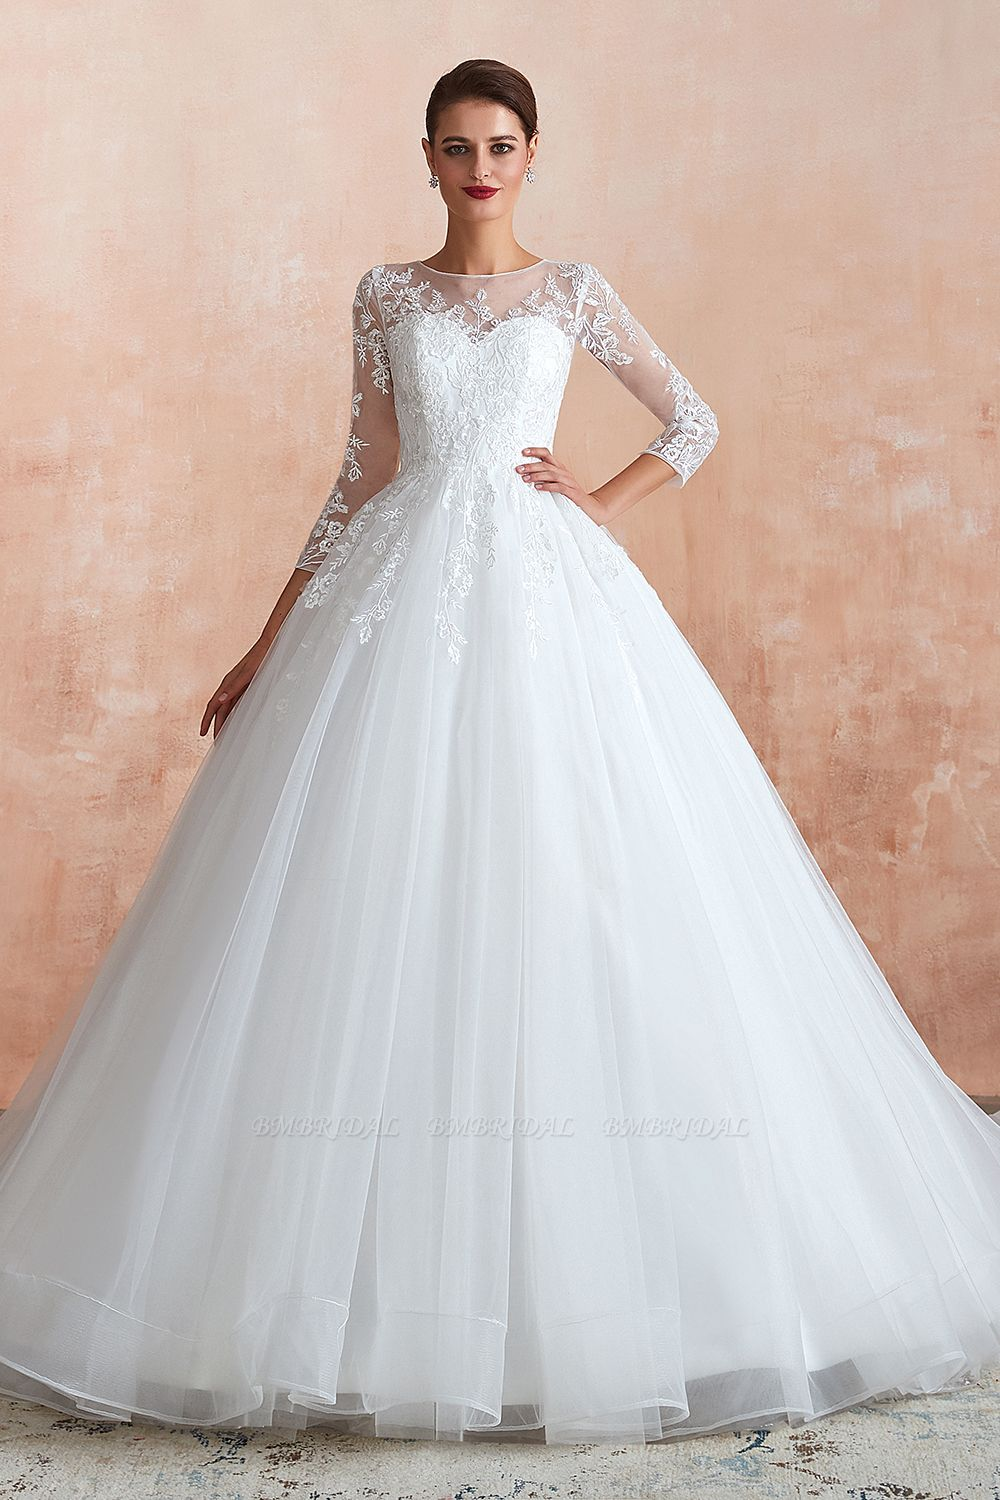 Tips for Choosing The Seasonal Styles of Wedding Dresses for The Big Day